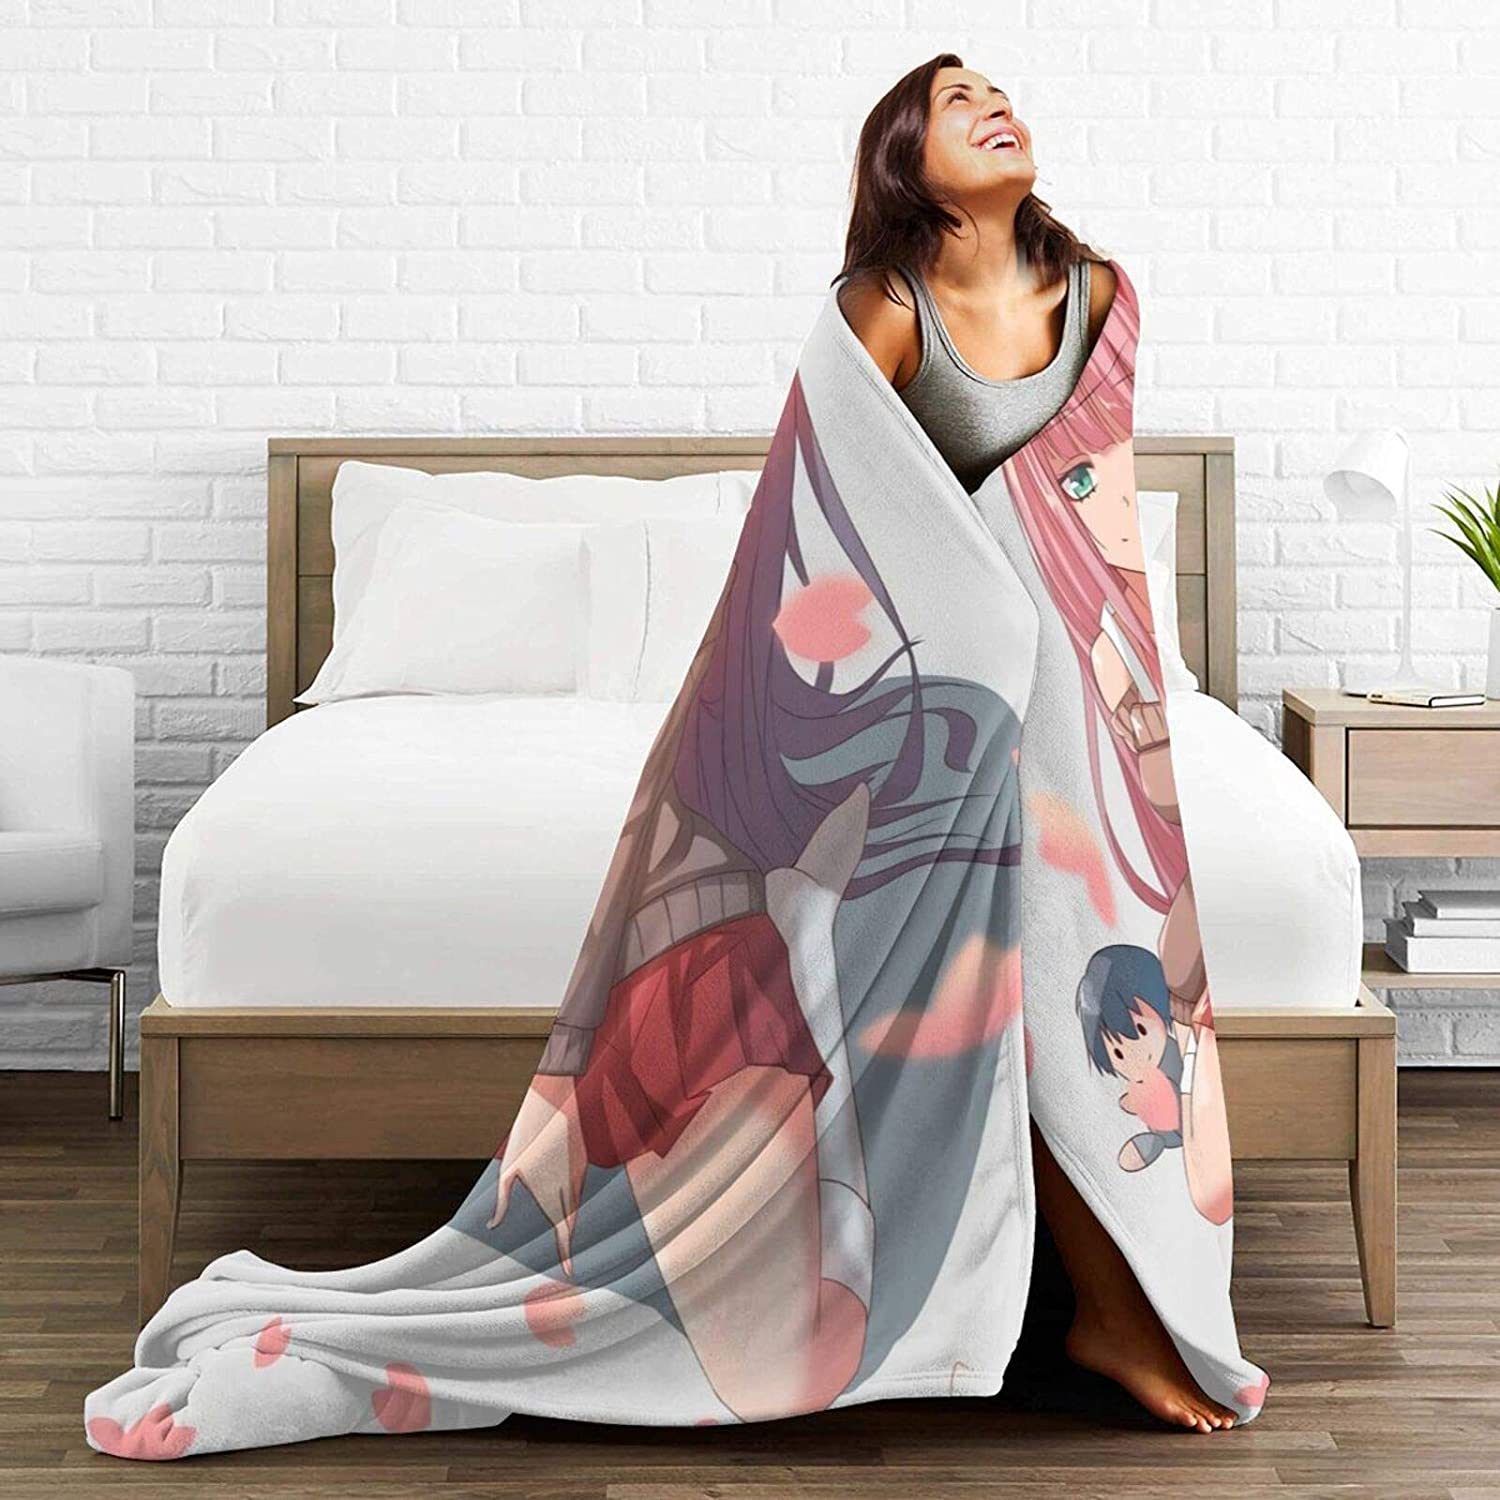 Darkt Darling in The FRANXX Luxury Throw Blanket Flannel Air Conditioning Blankets for Bed Sofa Home Decor Office Travel Gifts 60x50 Inch for Teens